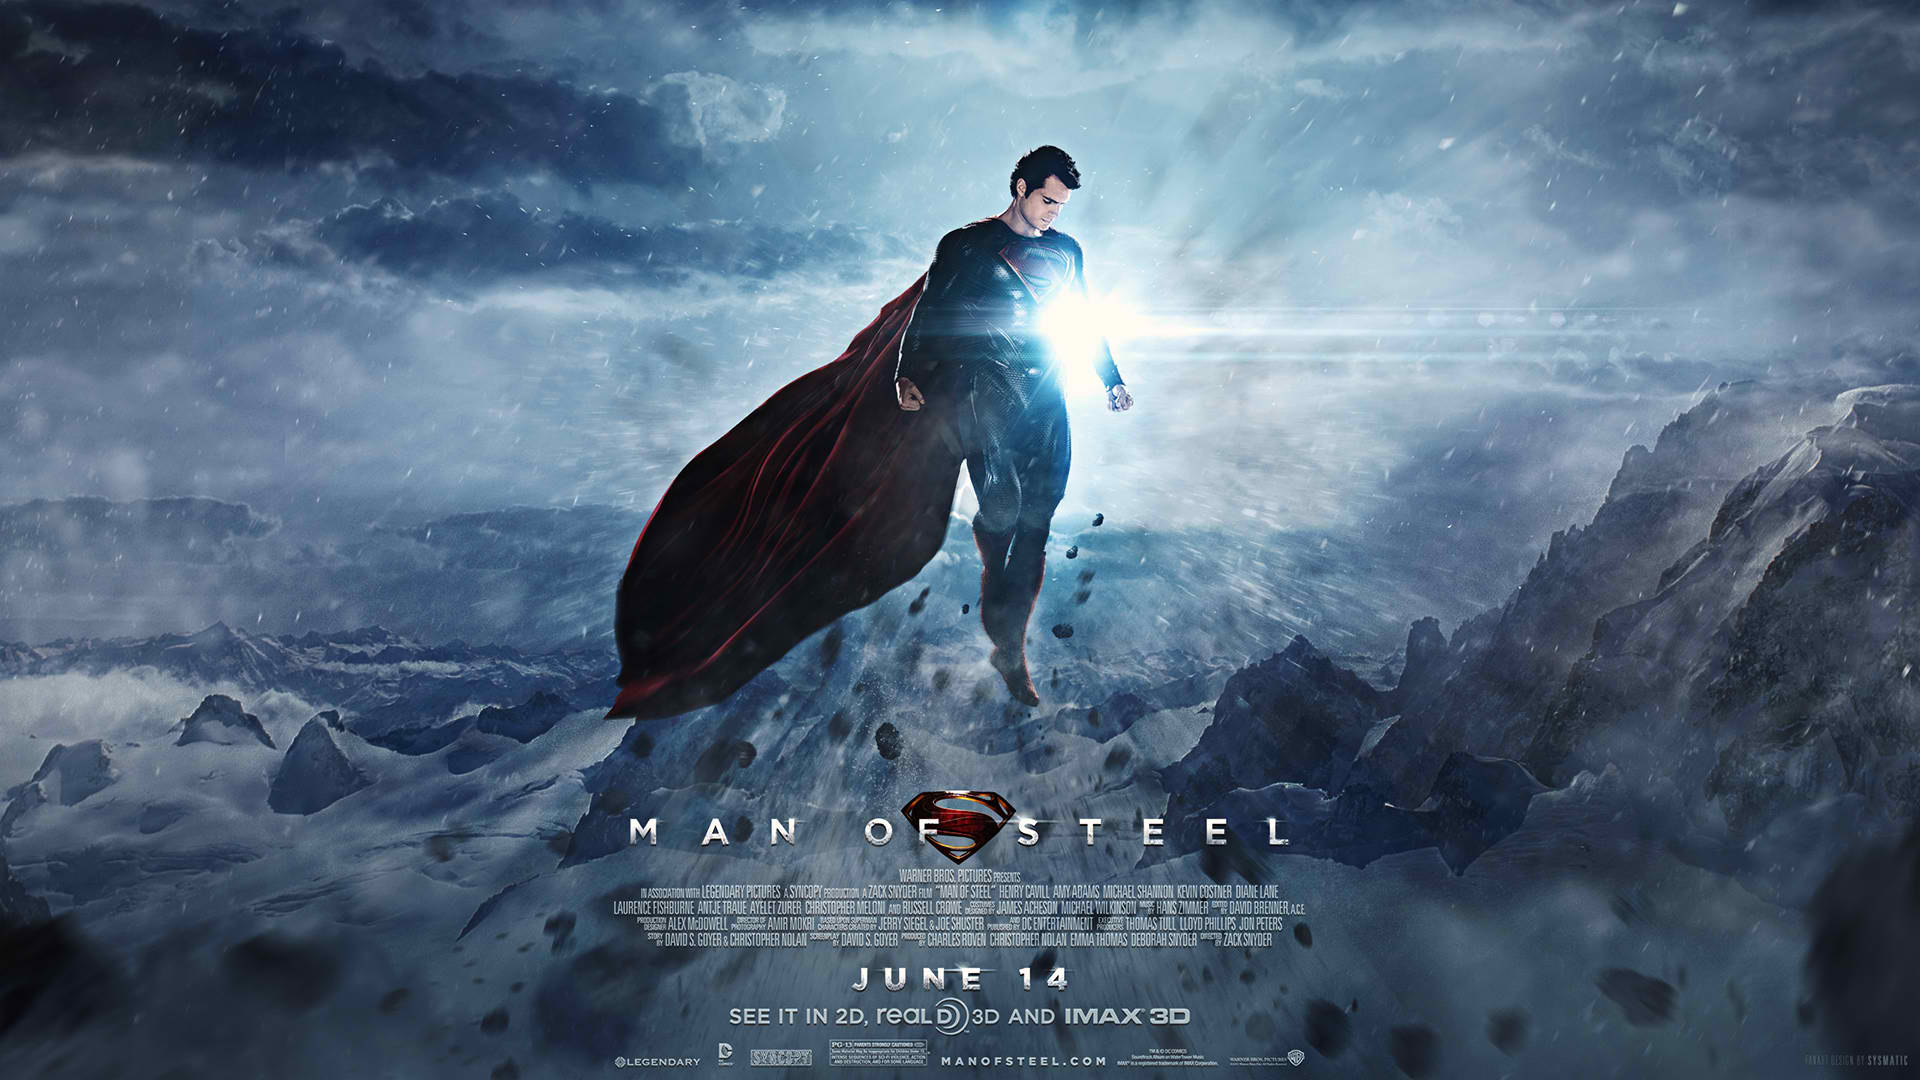 Man of Steel poster featured